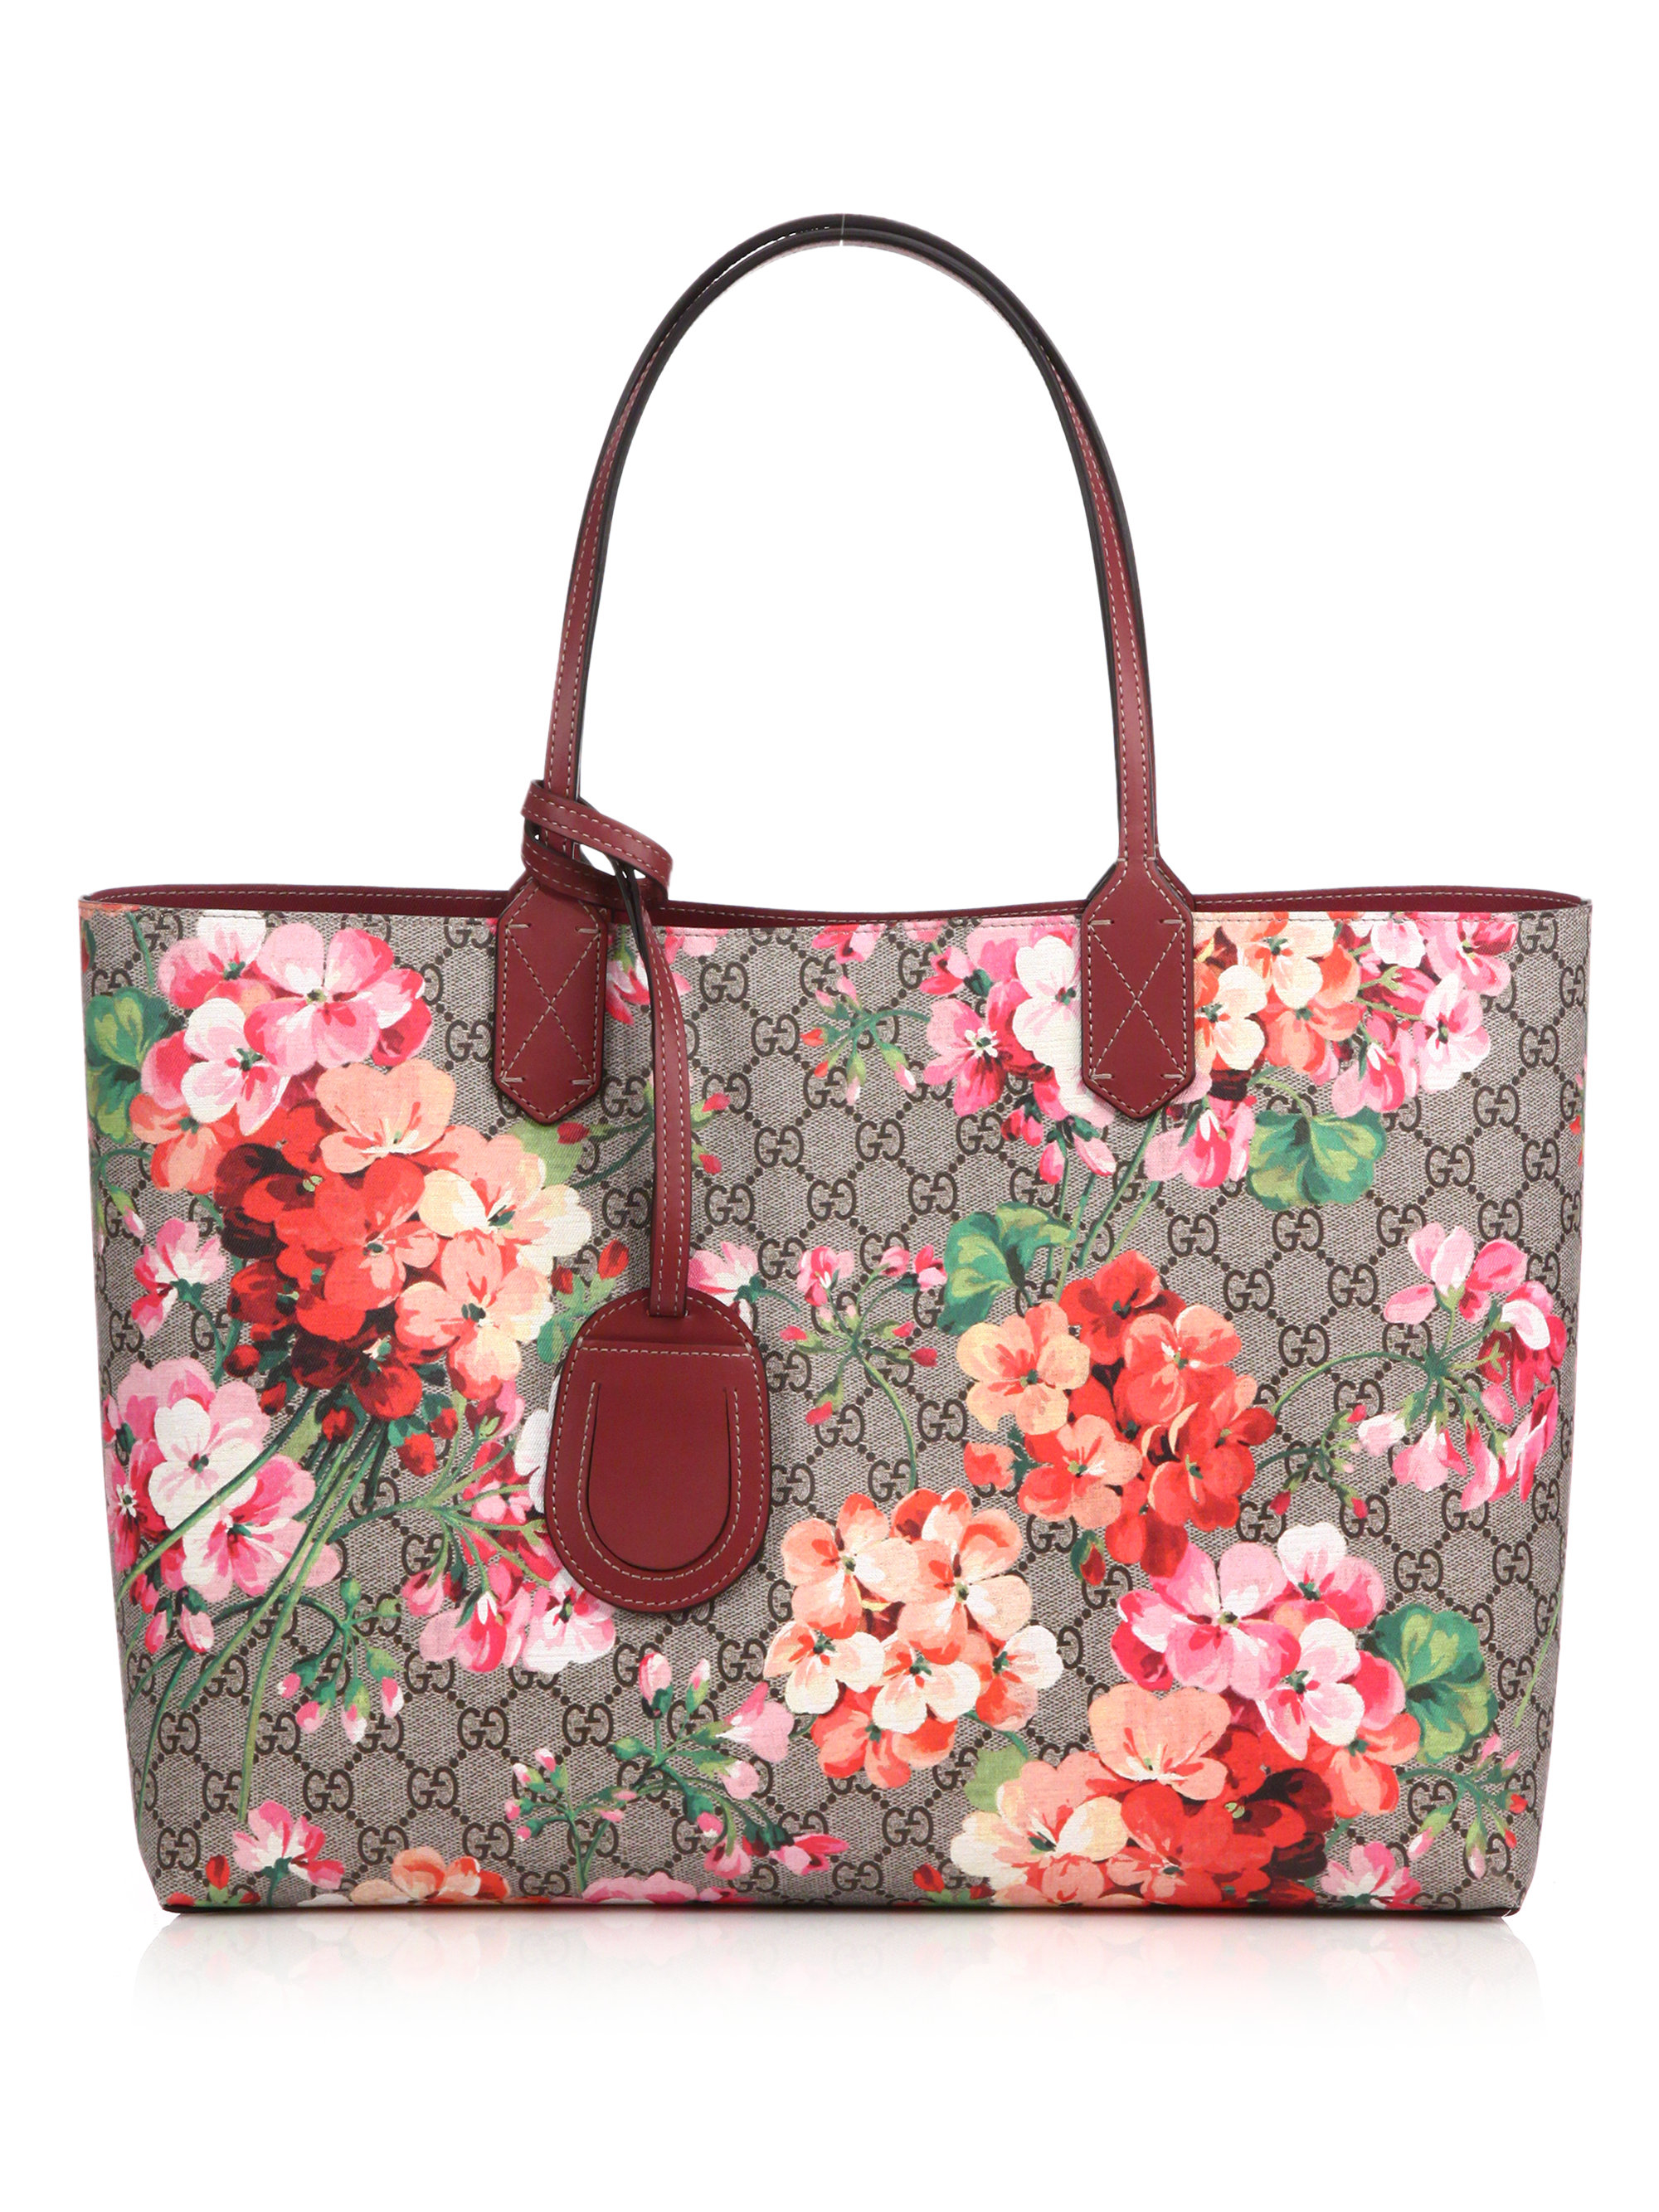 fe176bbbfb8c Gucci Reversible Gg Blooms Large Leather Tote in Pink - Lyst